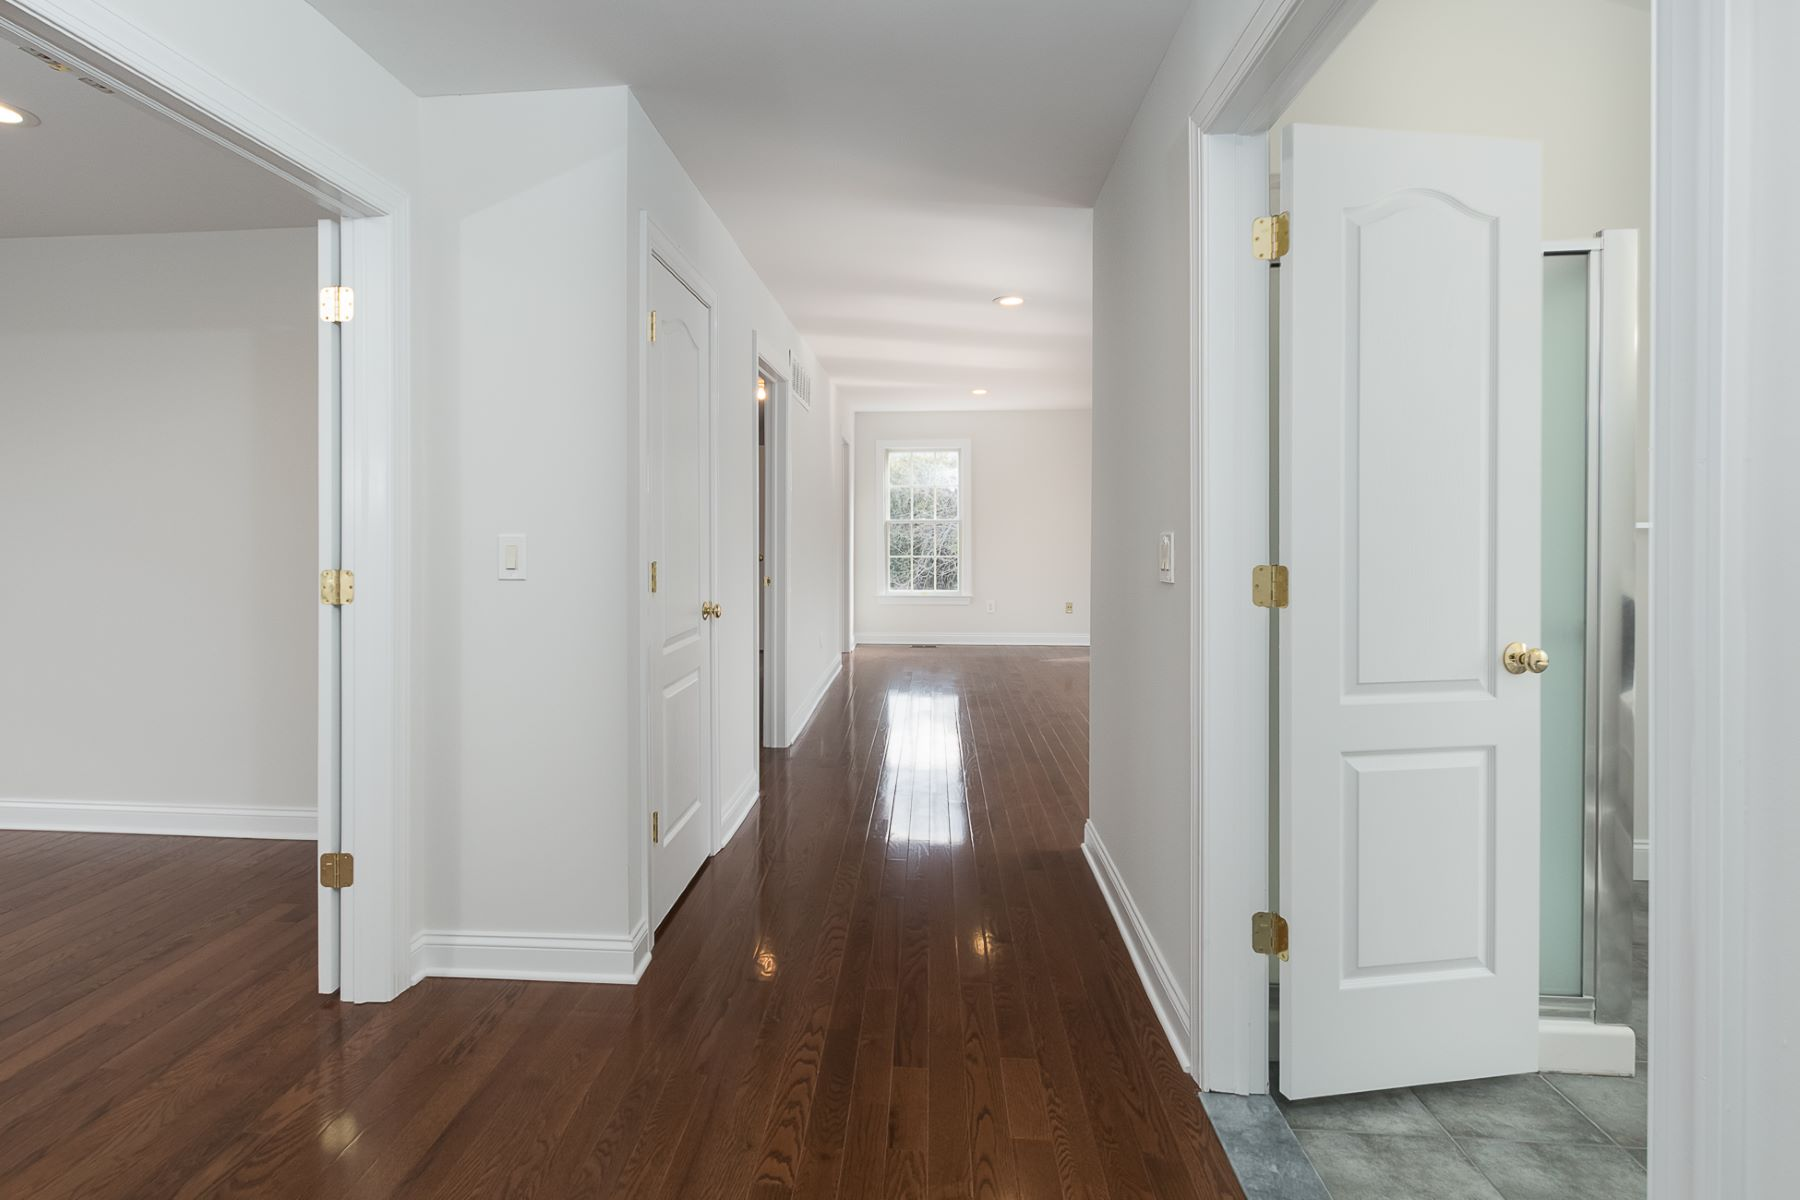 Additional photo for property listing at Completely Refreshed In Hopewell Hunt 6 Morris Drive, Princeton, New Jersey 08540 United States